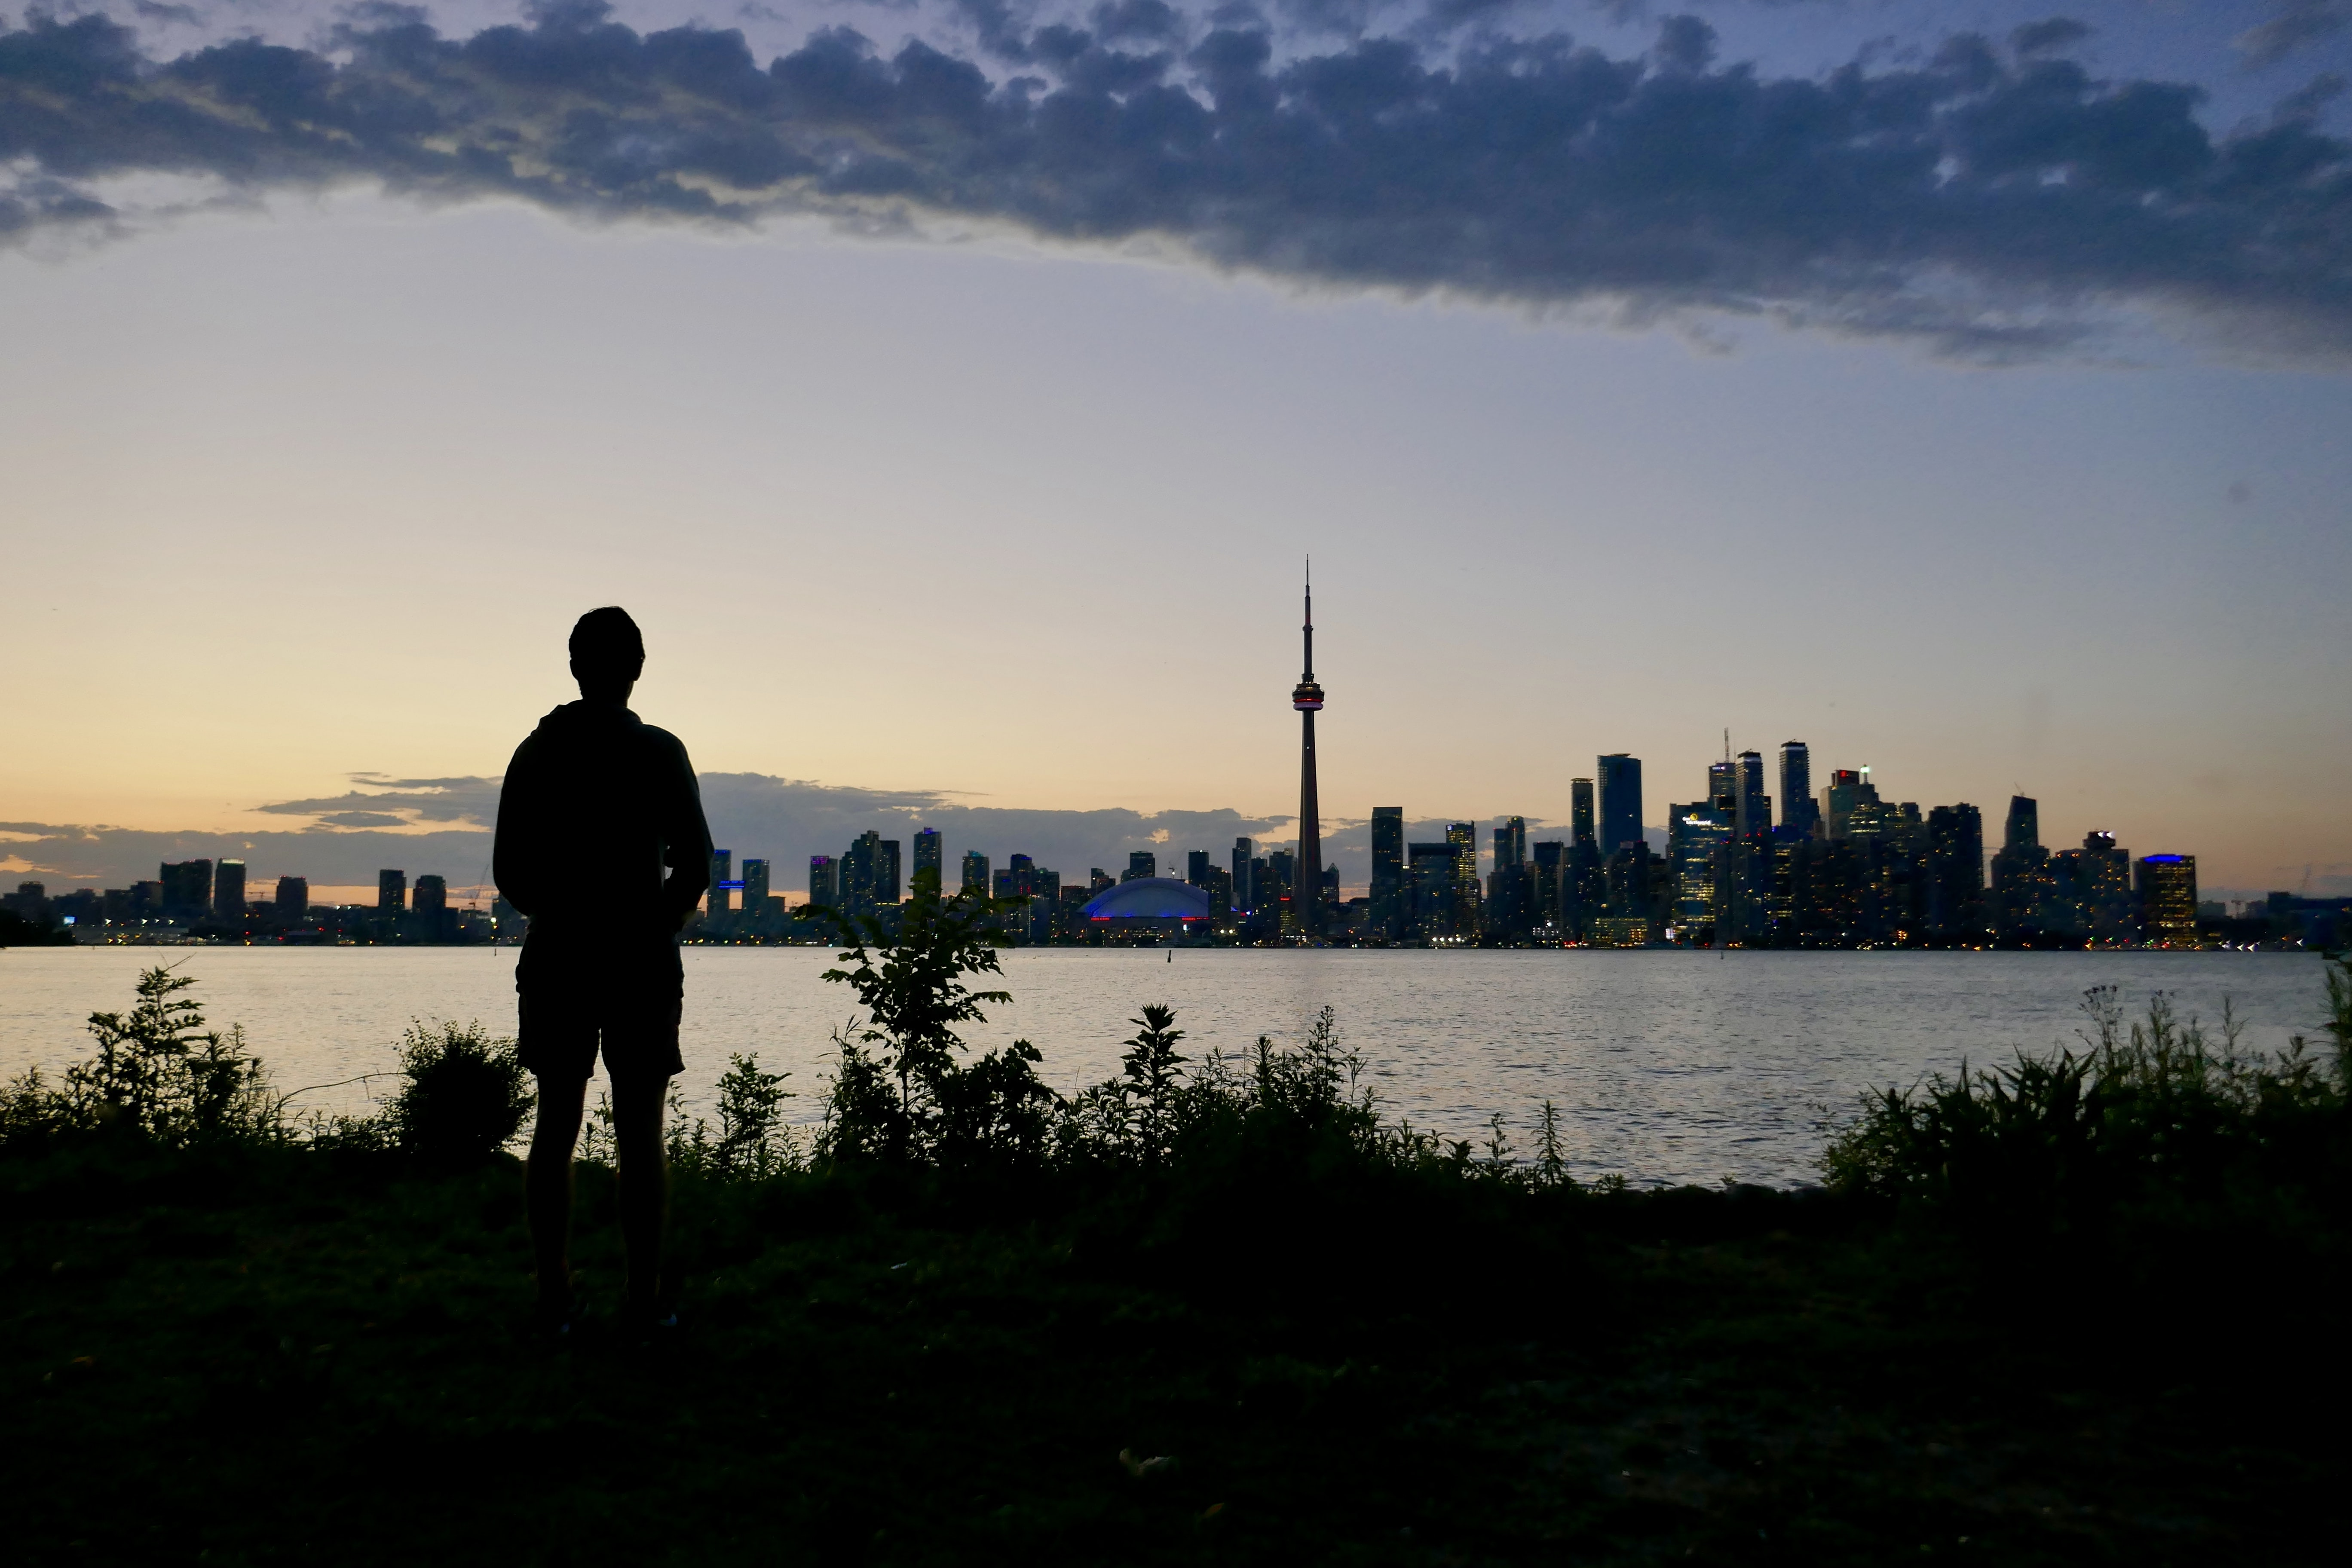 silhouette of a man standing on the grass in front of the city